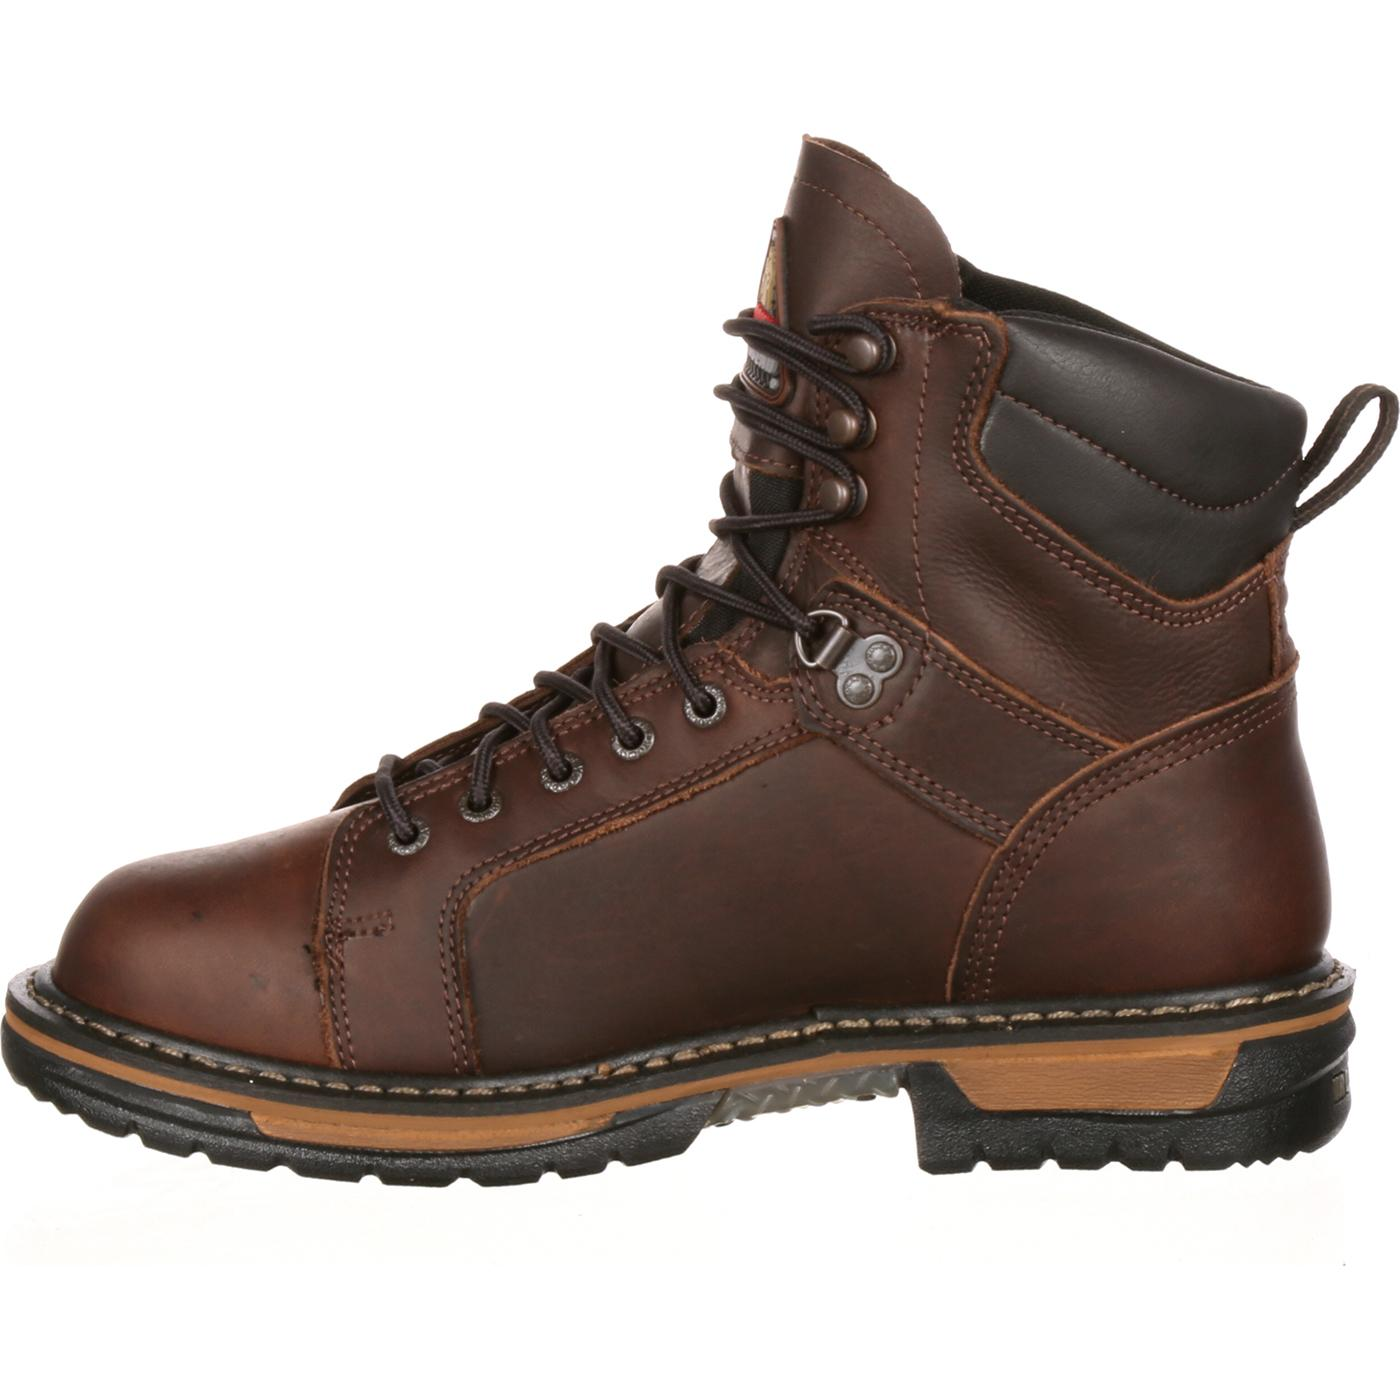 af2e2a293a5 Rocky IronClad Waterproof Lace To Toe Work Boots